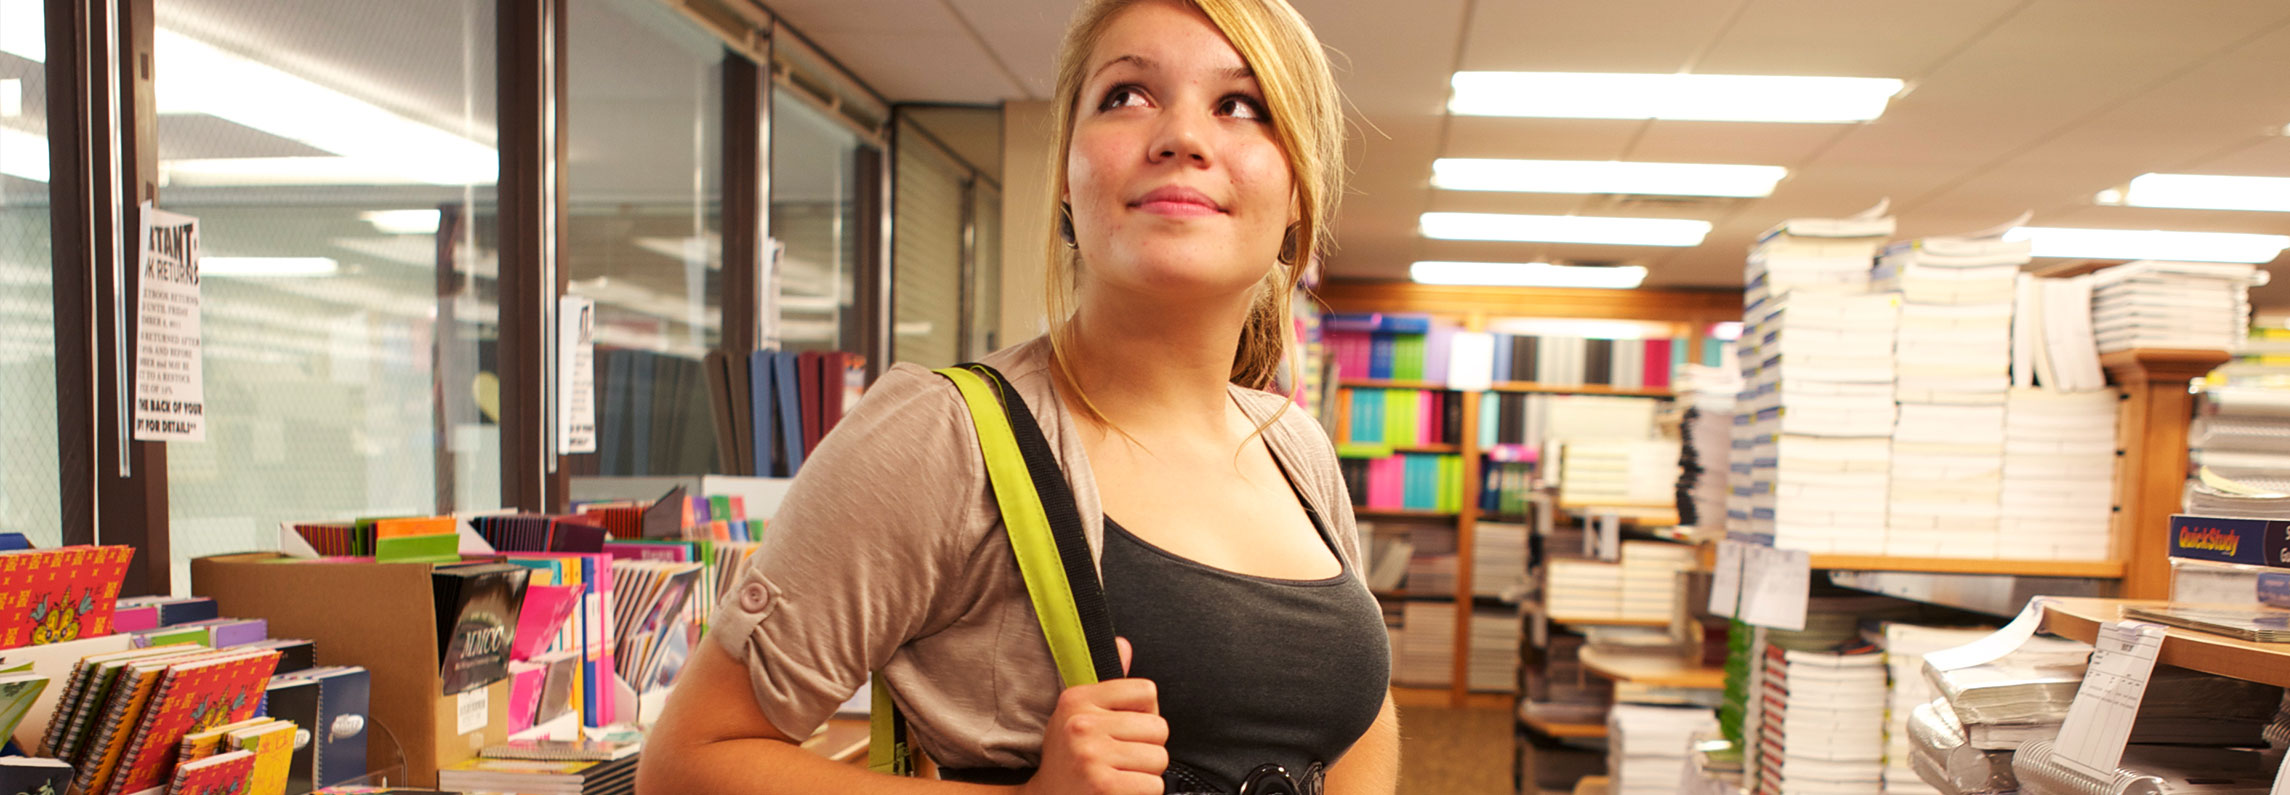 Girl looking optimistically around the bookstore